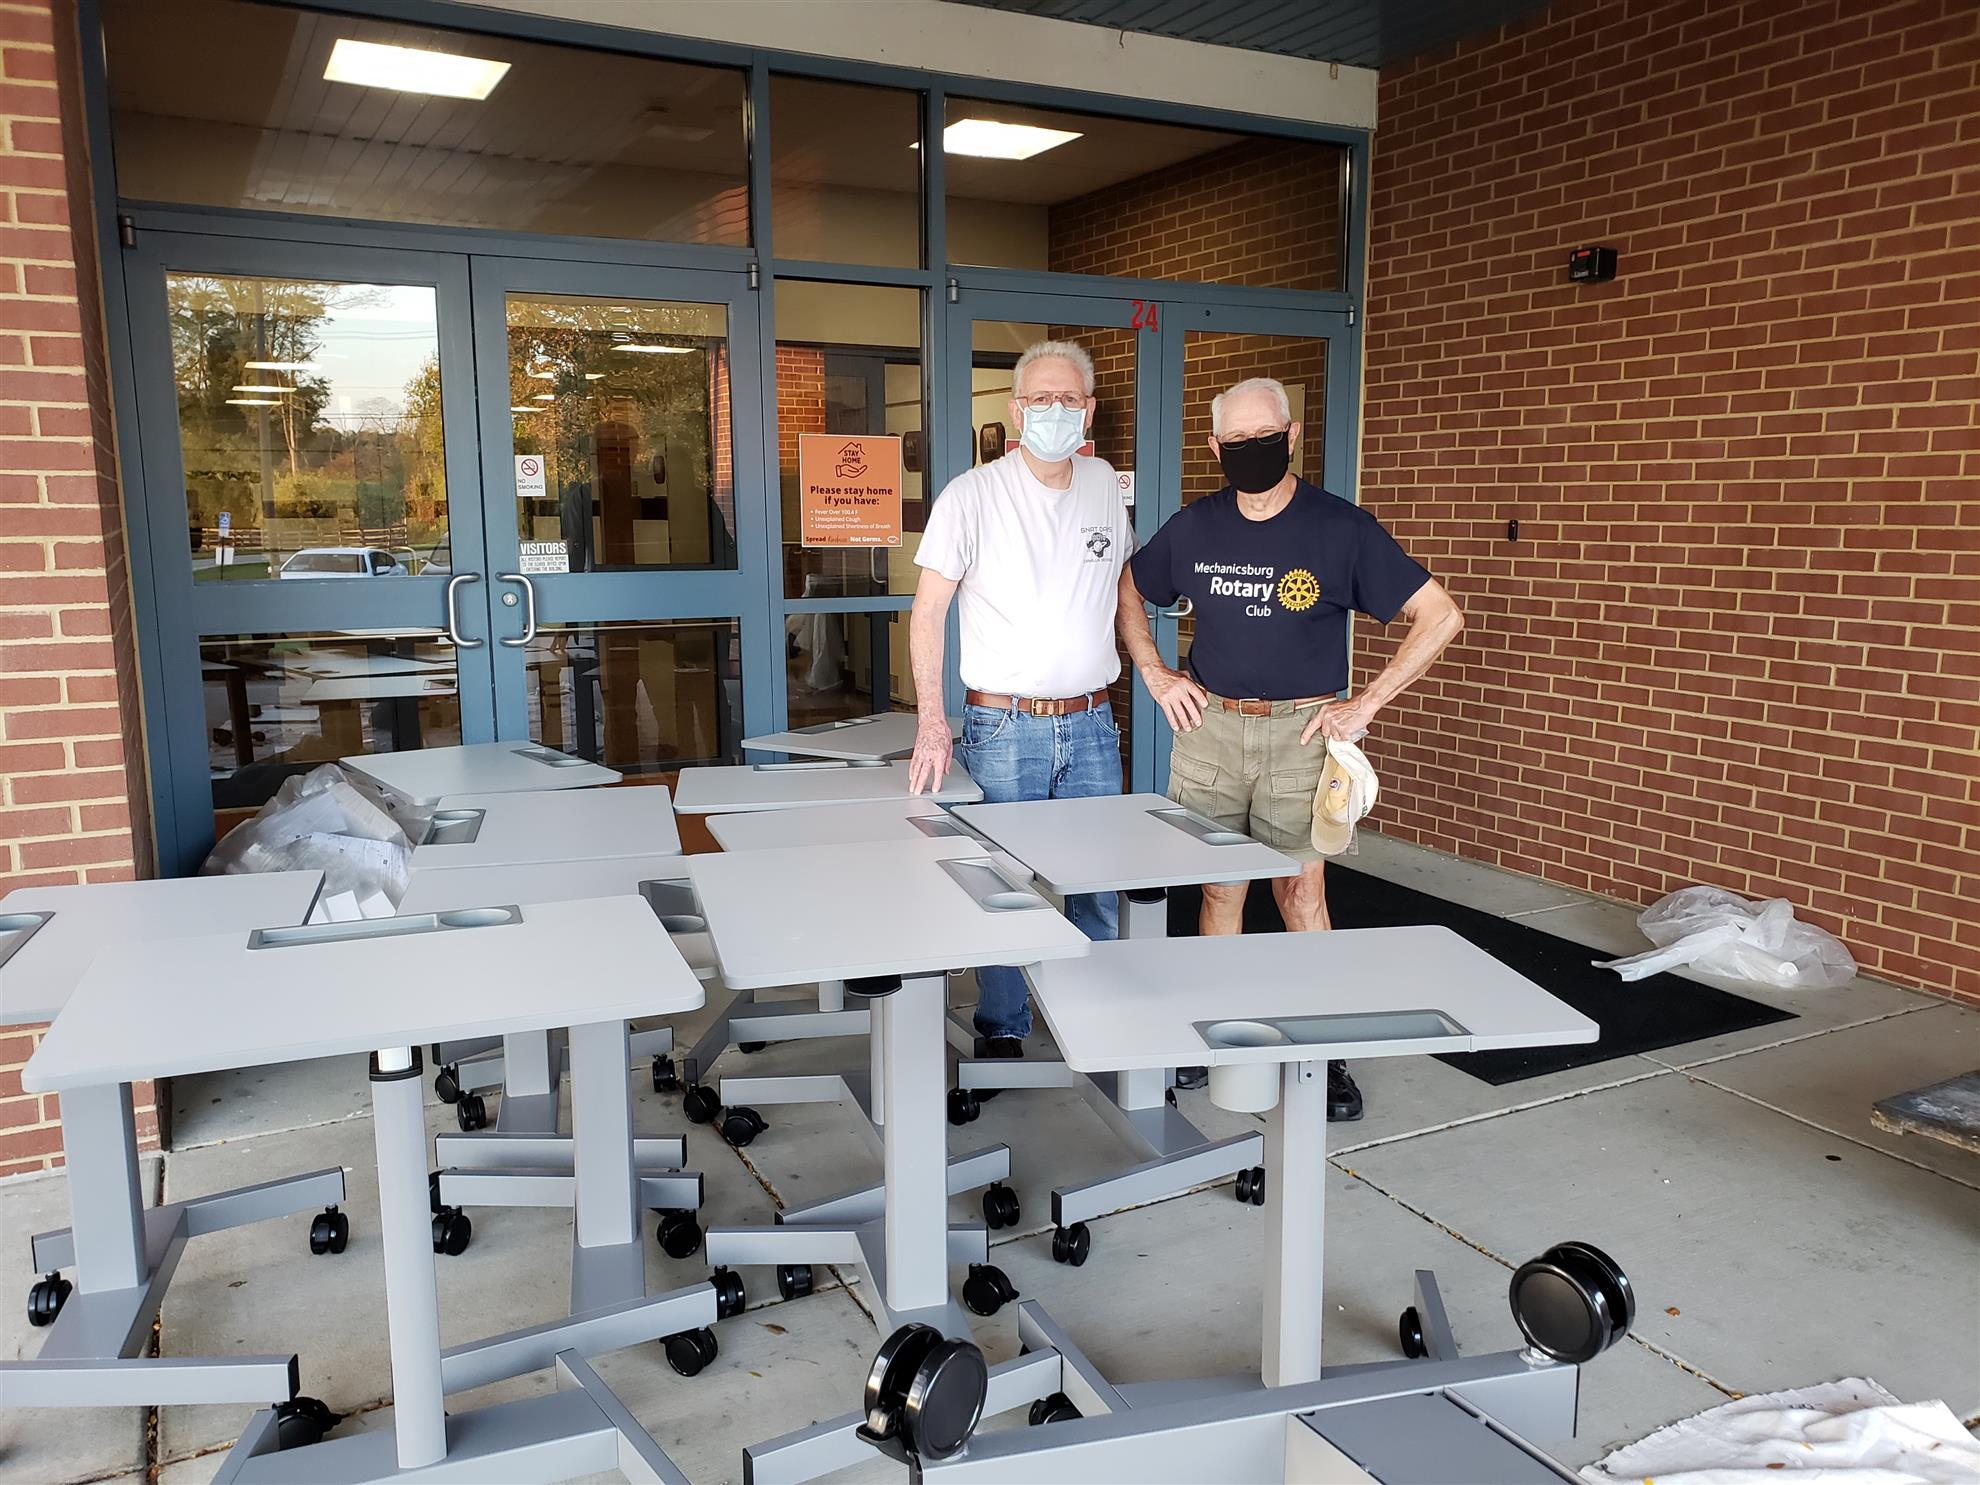 Rotarians Tom Burson & Dave Burns helping to assembly Sit/Stand desks